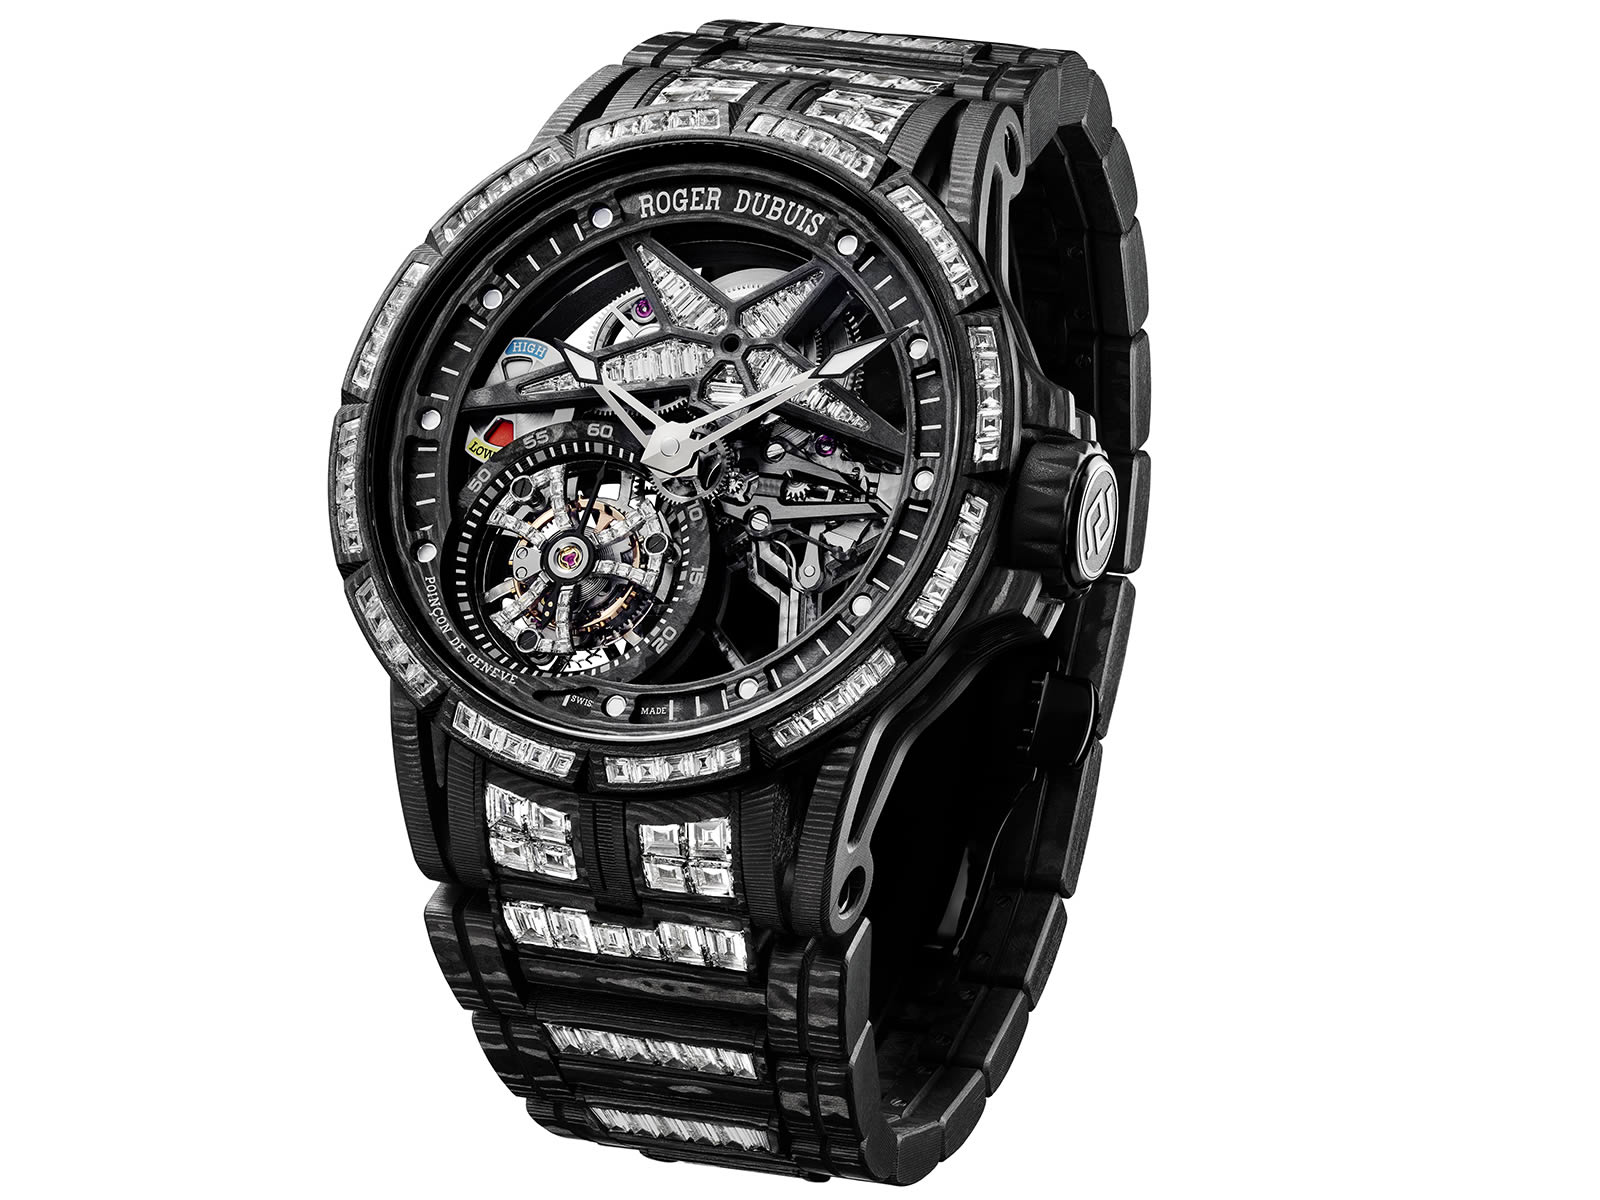 rddbex0675-roger-dubuis-excalibur-spider-ultimate-carbon-4-.jpg